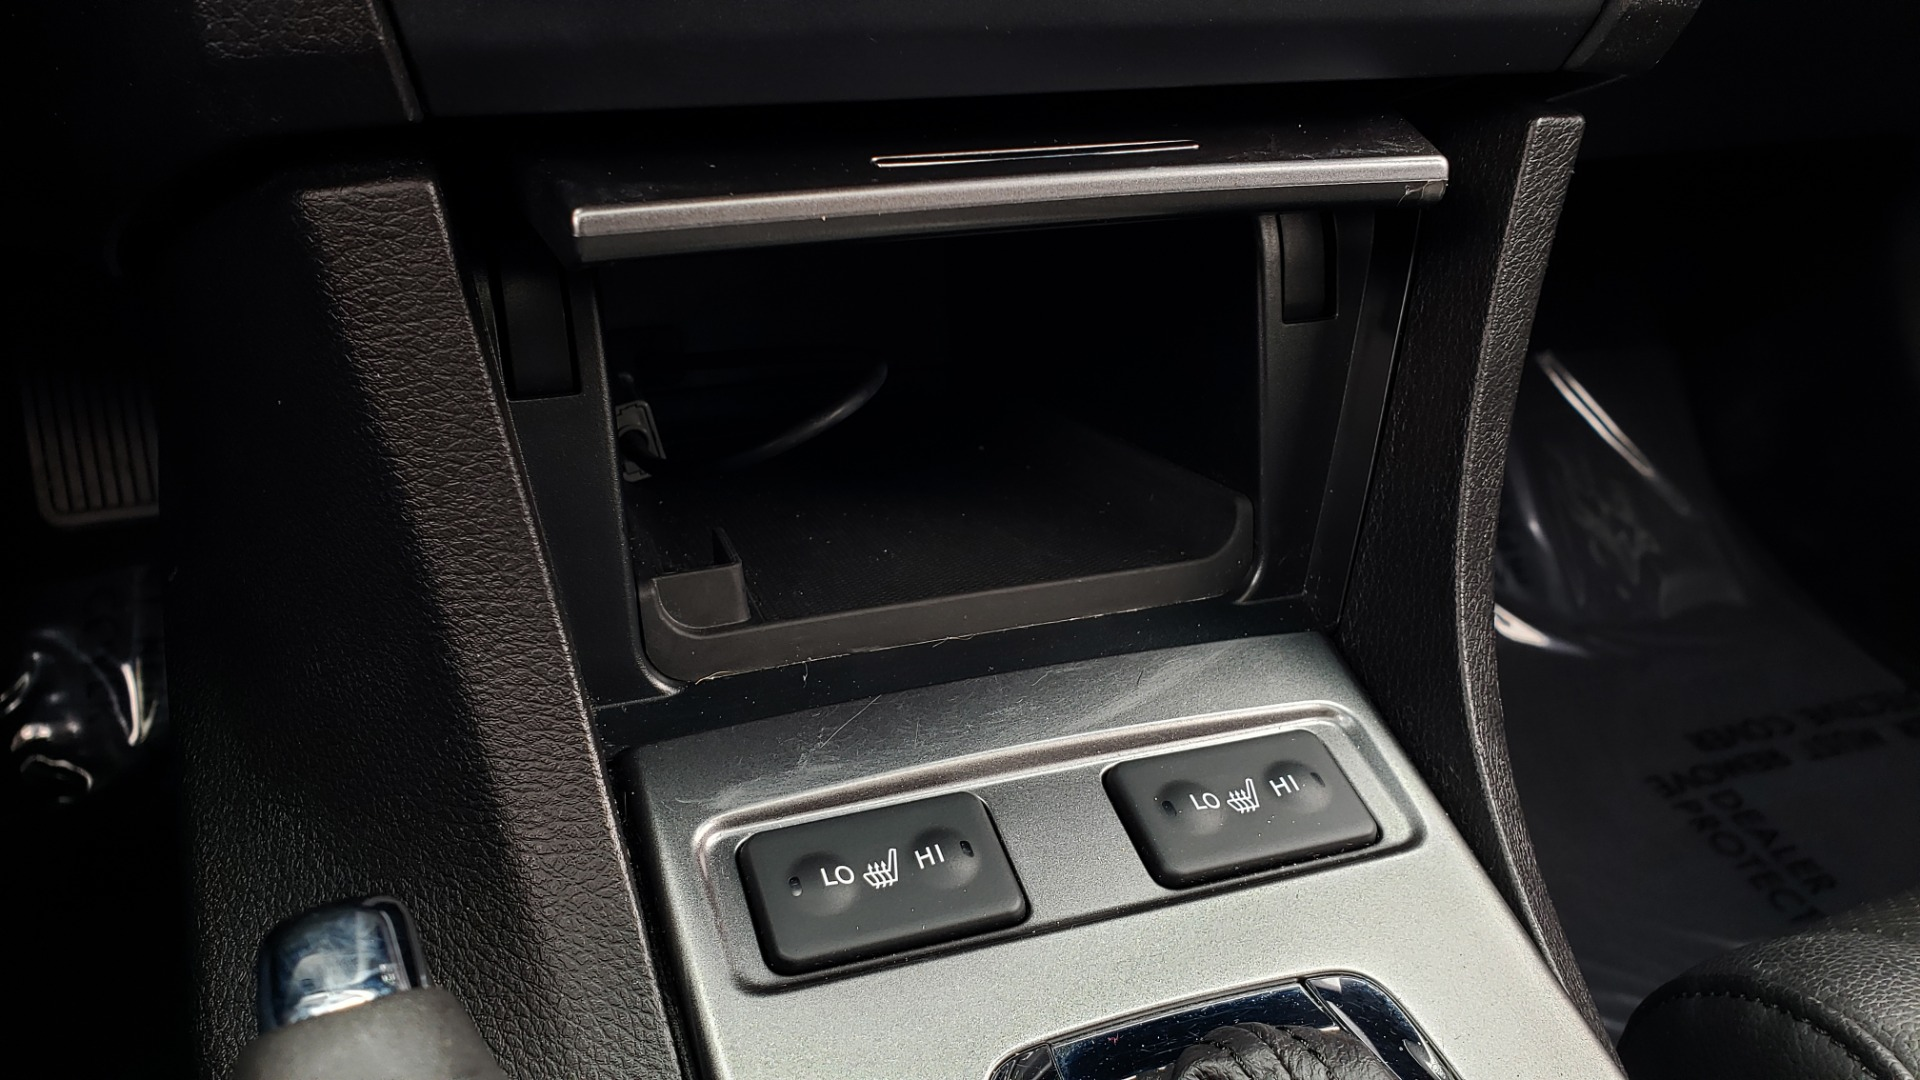 Used 2013 Acura ILX TECH PKG / SUNROOF / NAV / DUAL-ZONE A/C / REARVIEW for sale Sold at Formula Imports in Charlotte NC 28227 45